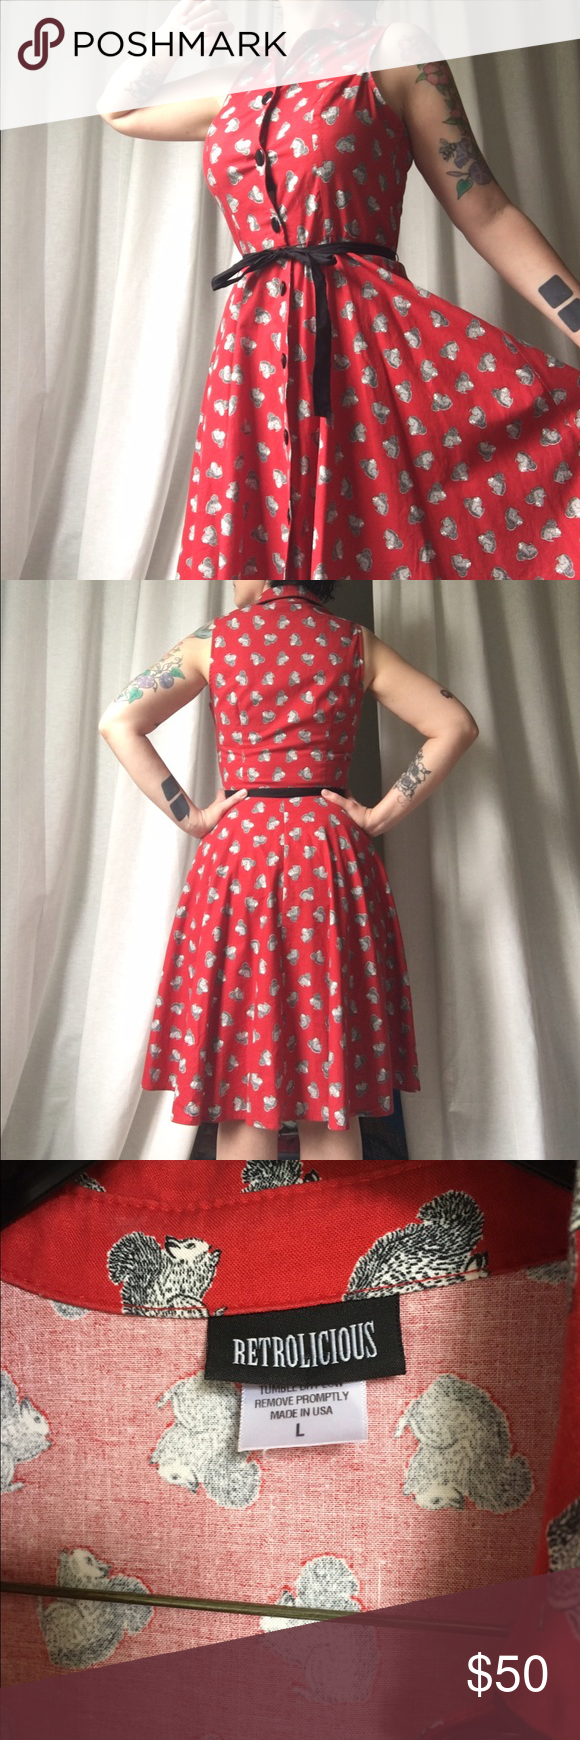 retrolicious squirrel print dress adorable red squirrel print